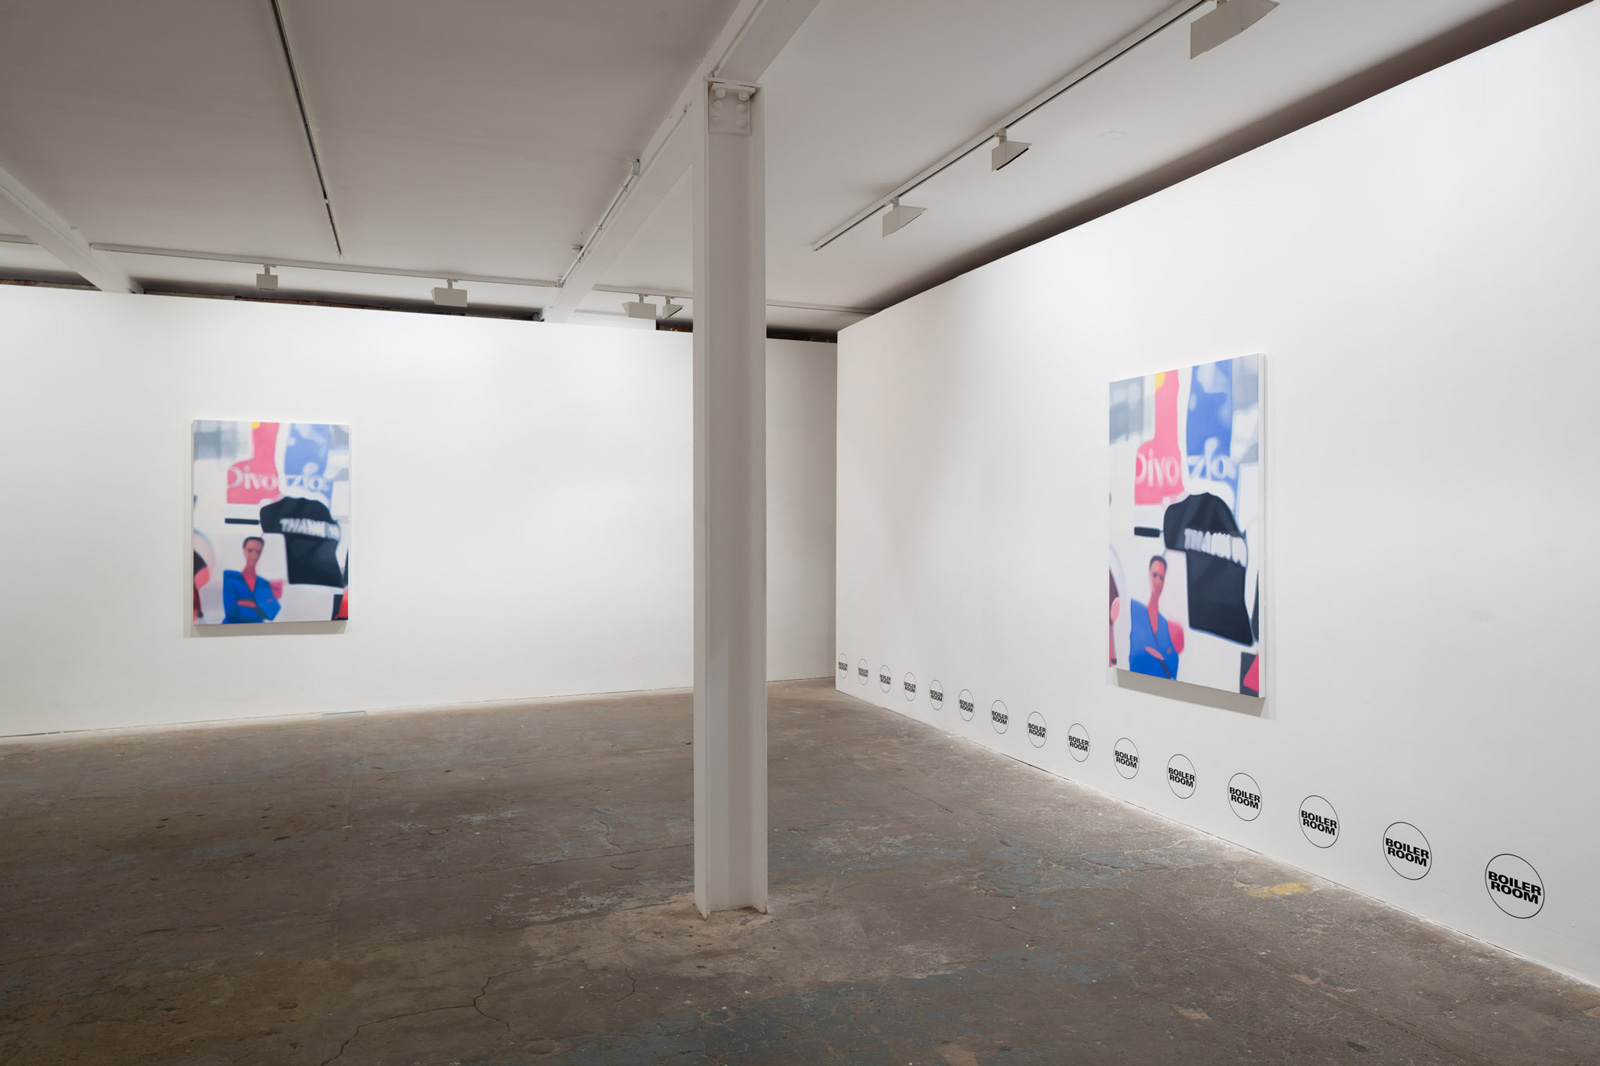 Installation view. P.A. , Alan Michael